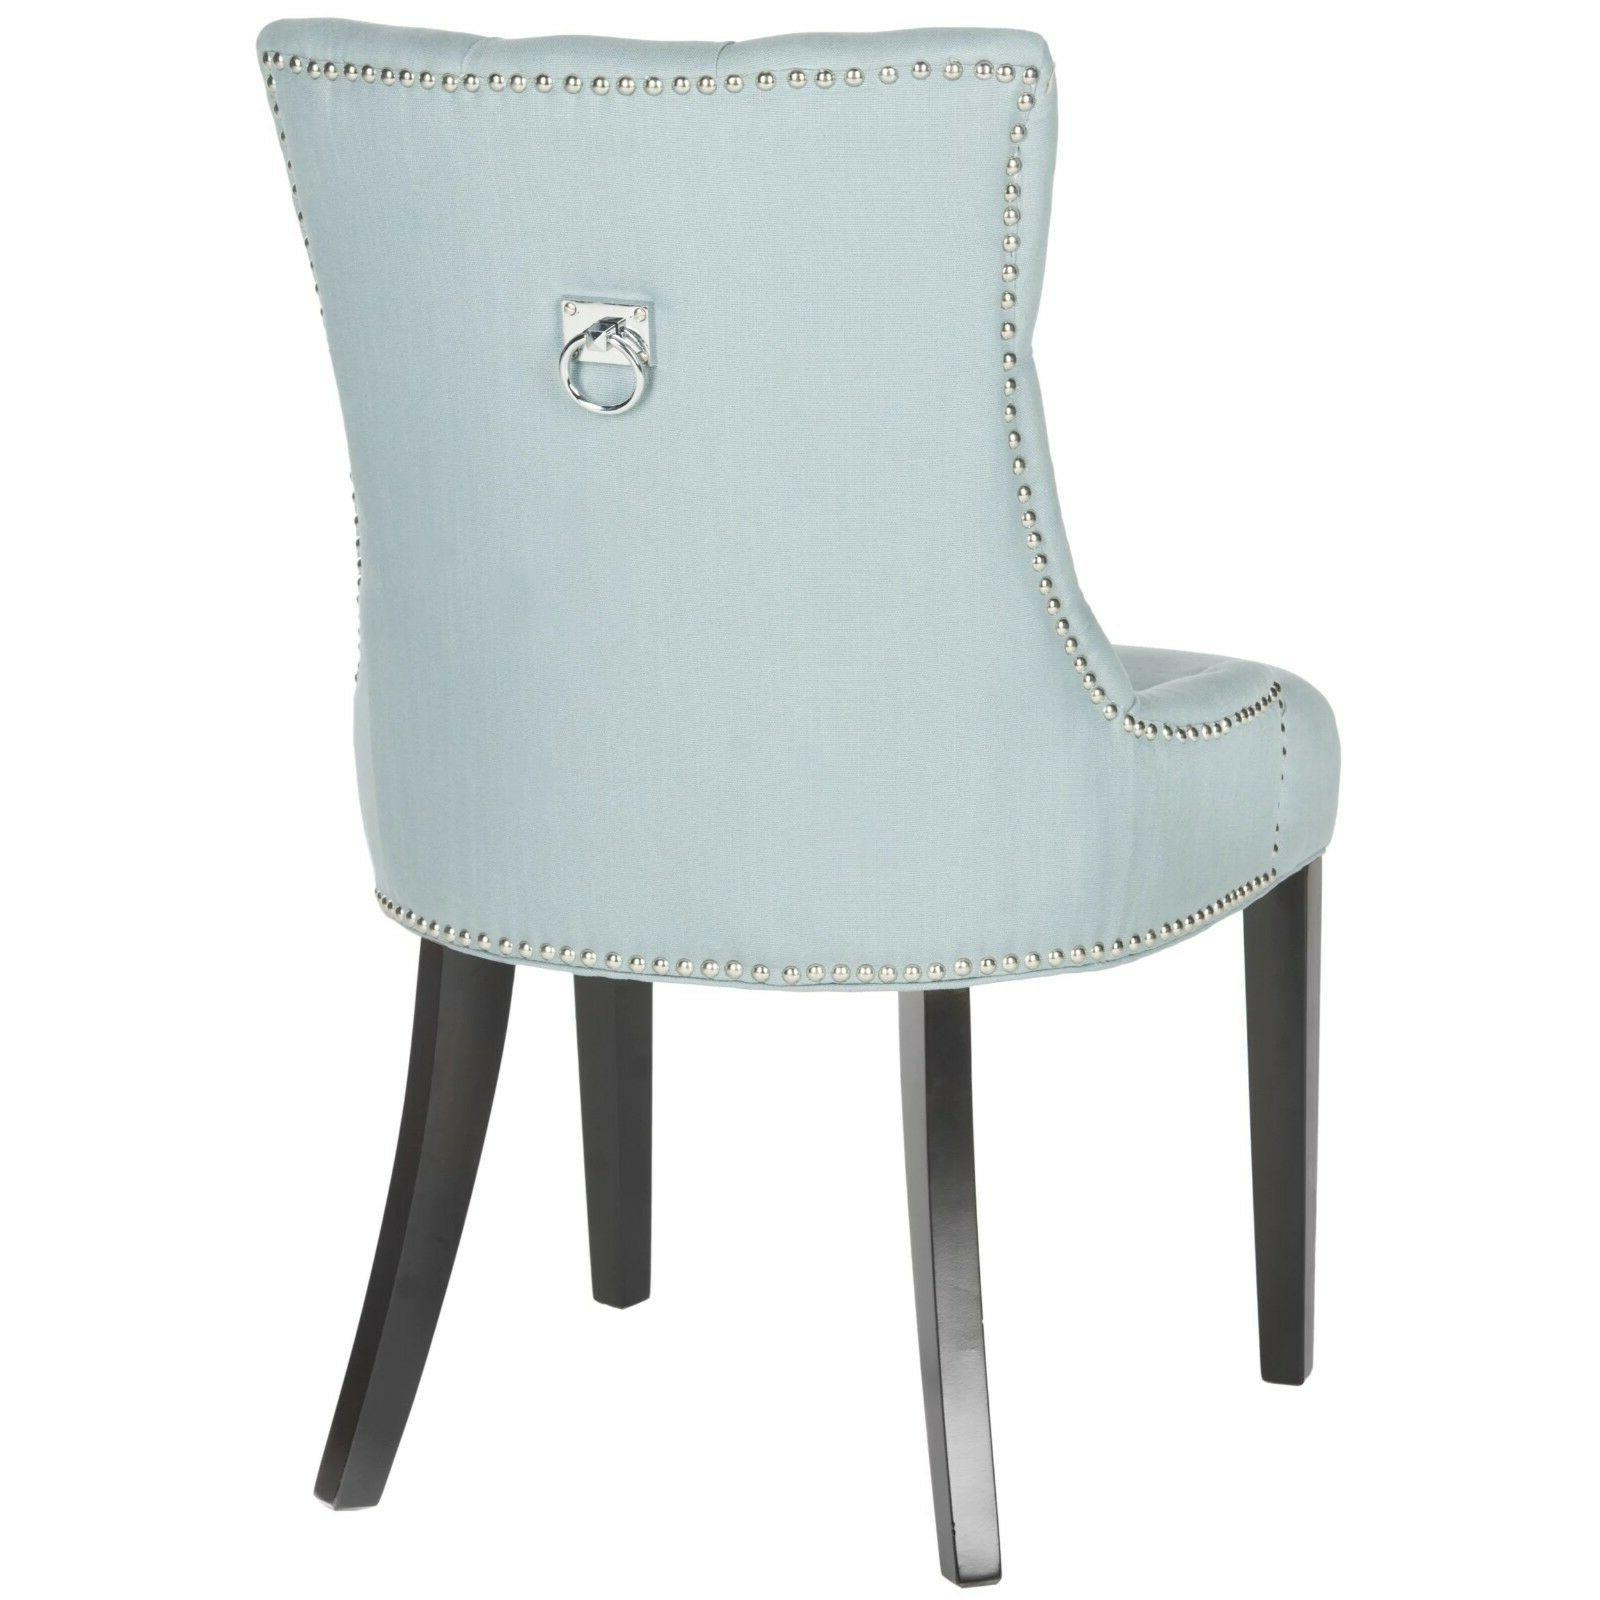 SET OF Blue Accent Tufted Chair Seat